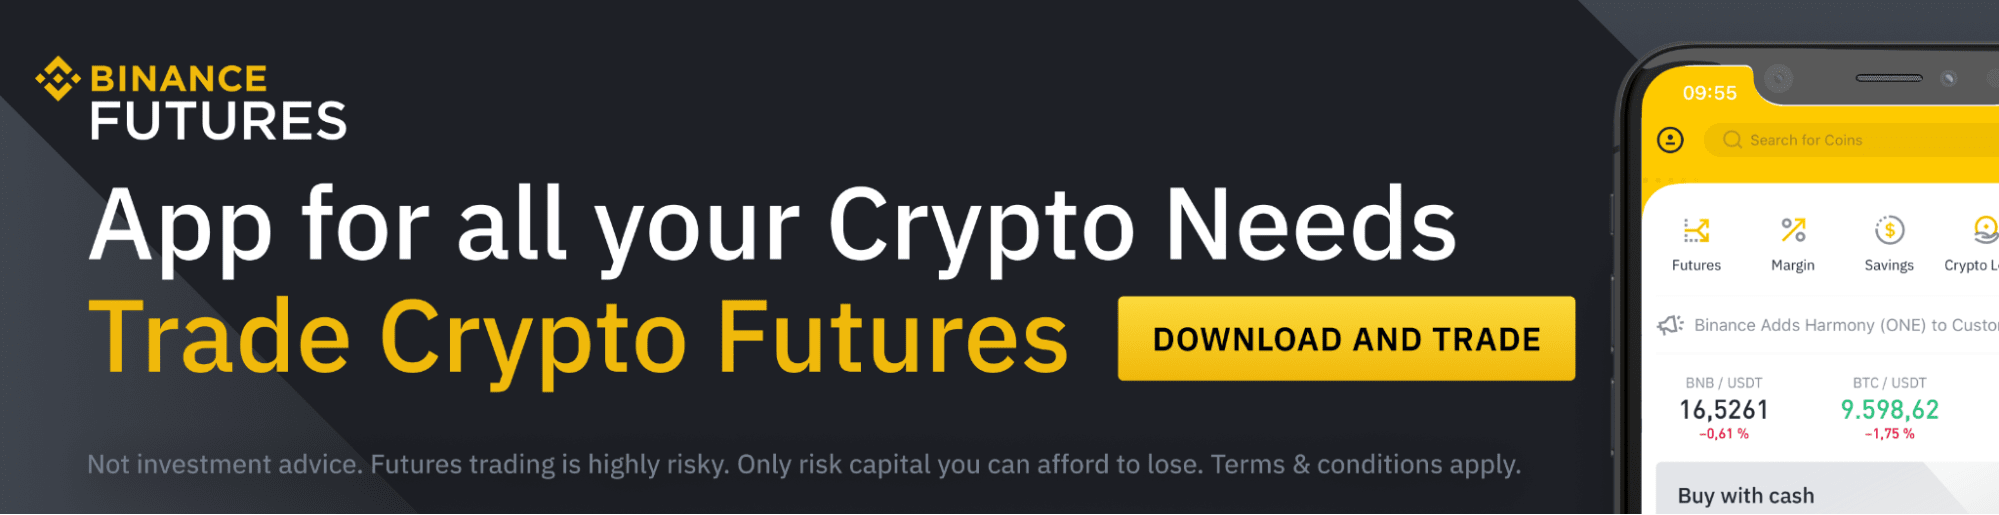 Crypto Futures Risk and Money Management: 5 Things You Can Do to Better Manage Trading Risk Cryptocurrency Trading Signals, Strategies & Templates   DexStrats